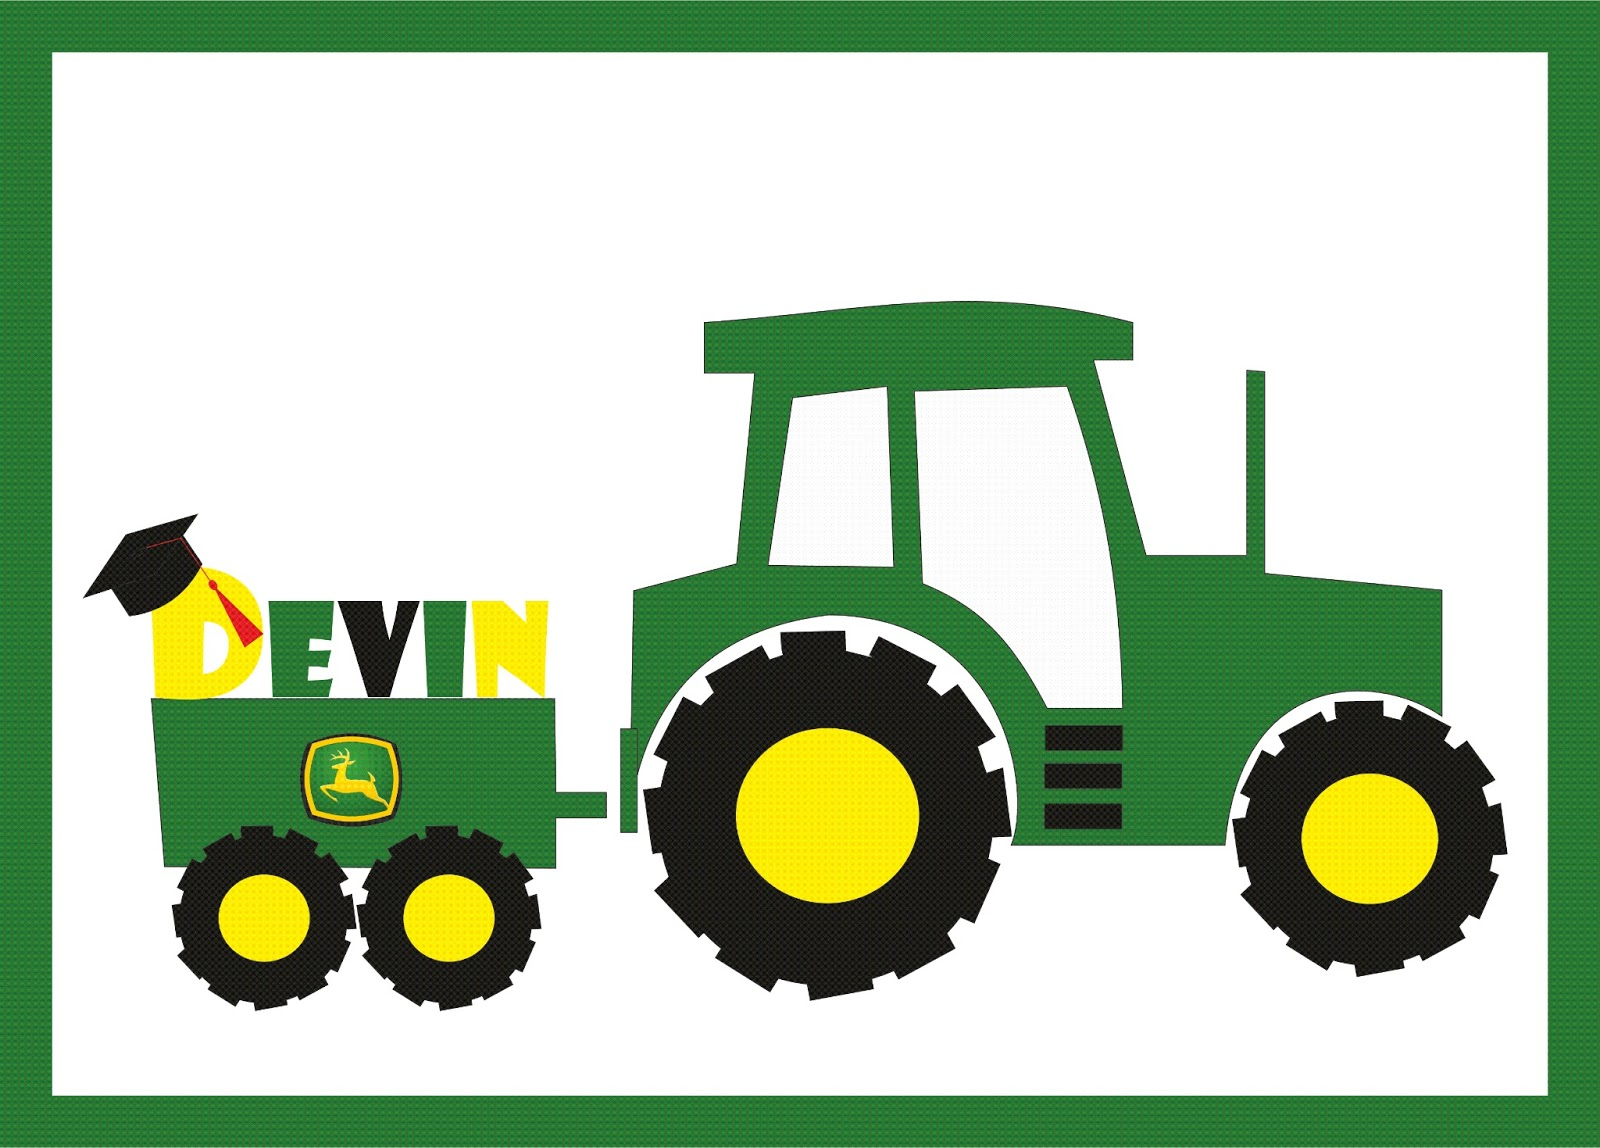 Bucket of water john deere tractor clipart funny banner Free Tractor Images Free, Download Free Clip Art, Free Clip Art on ... banner